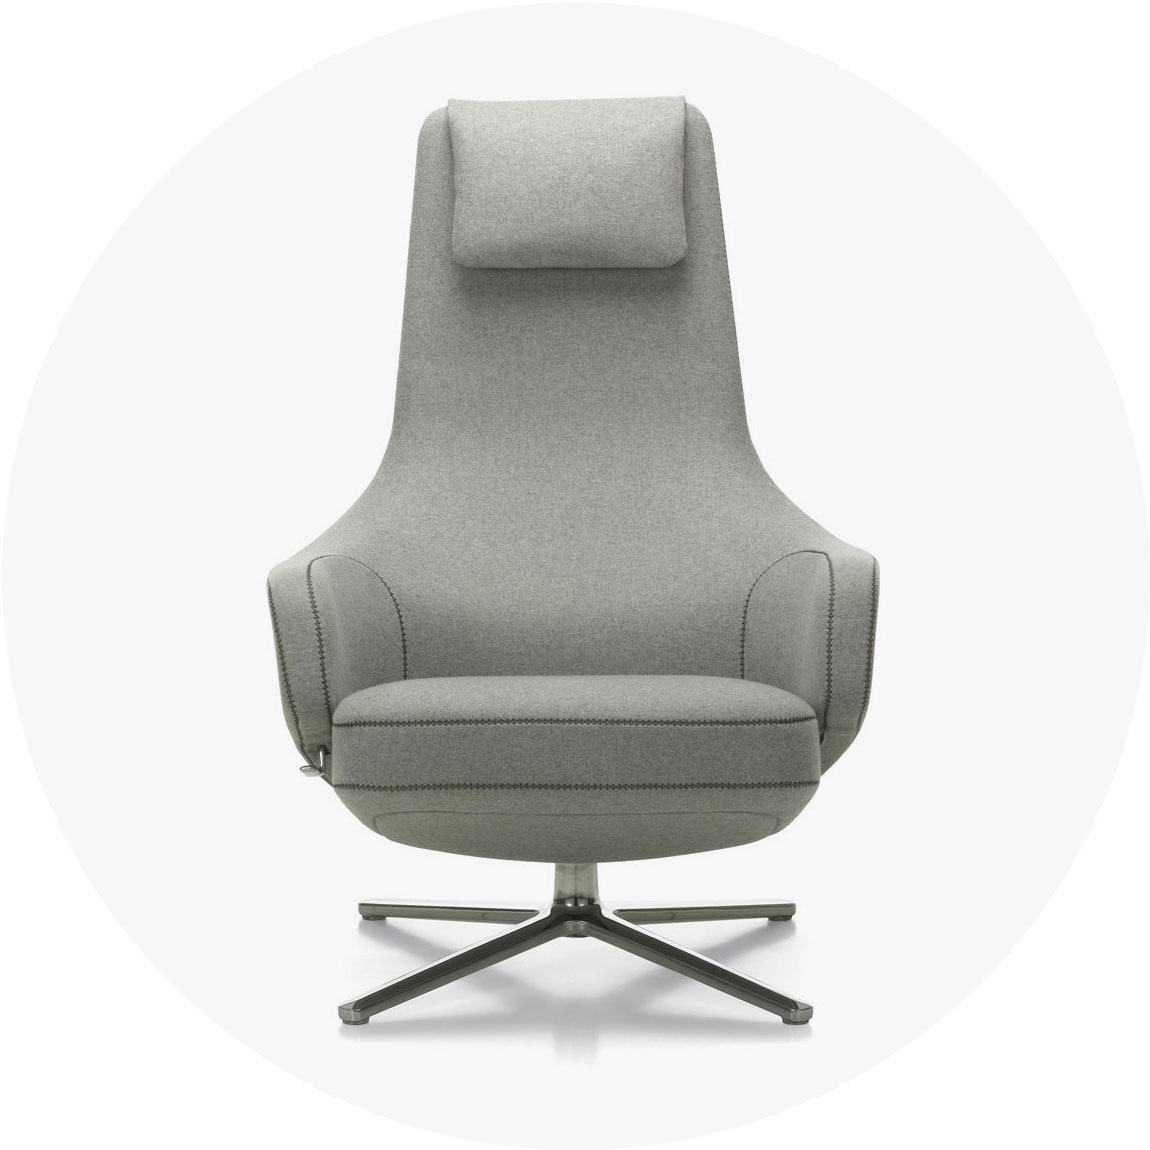 reception_repos-lounge-chair-and-ottoman-14.jpg